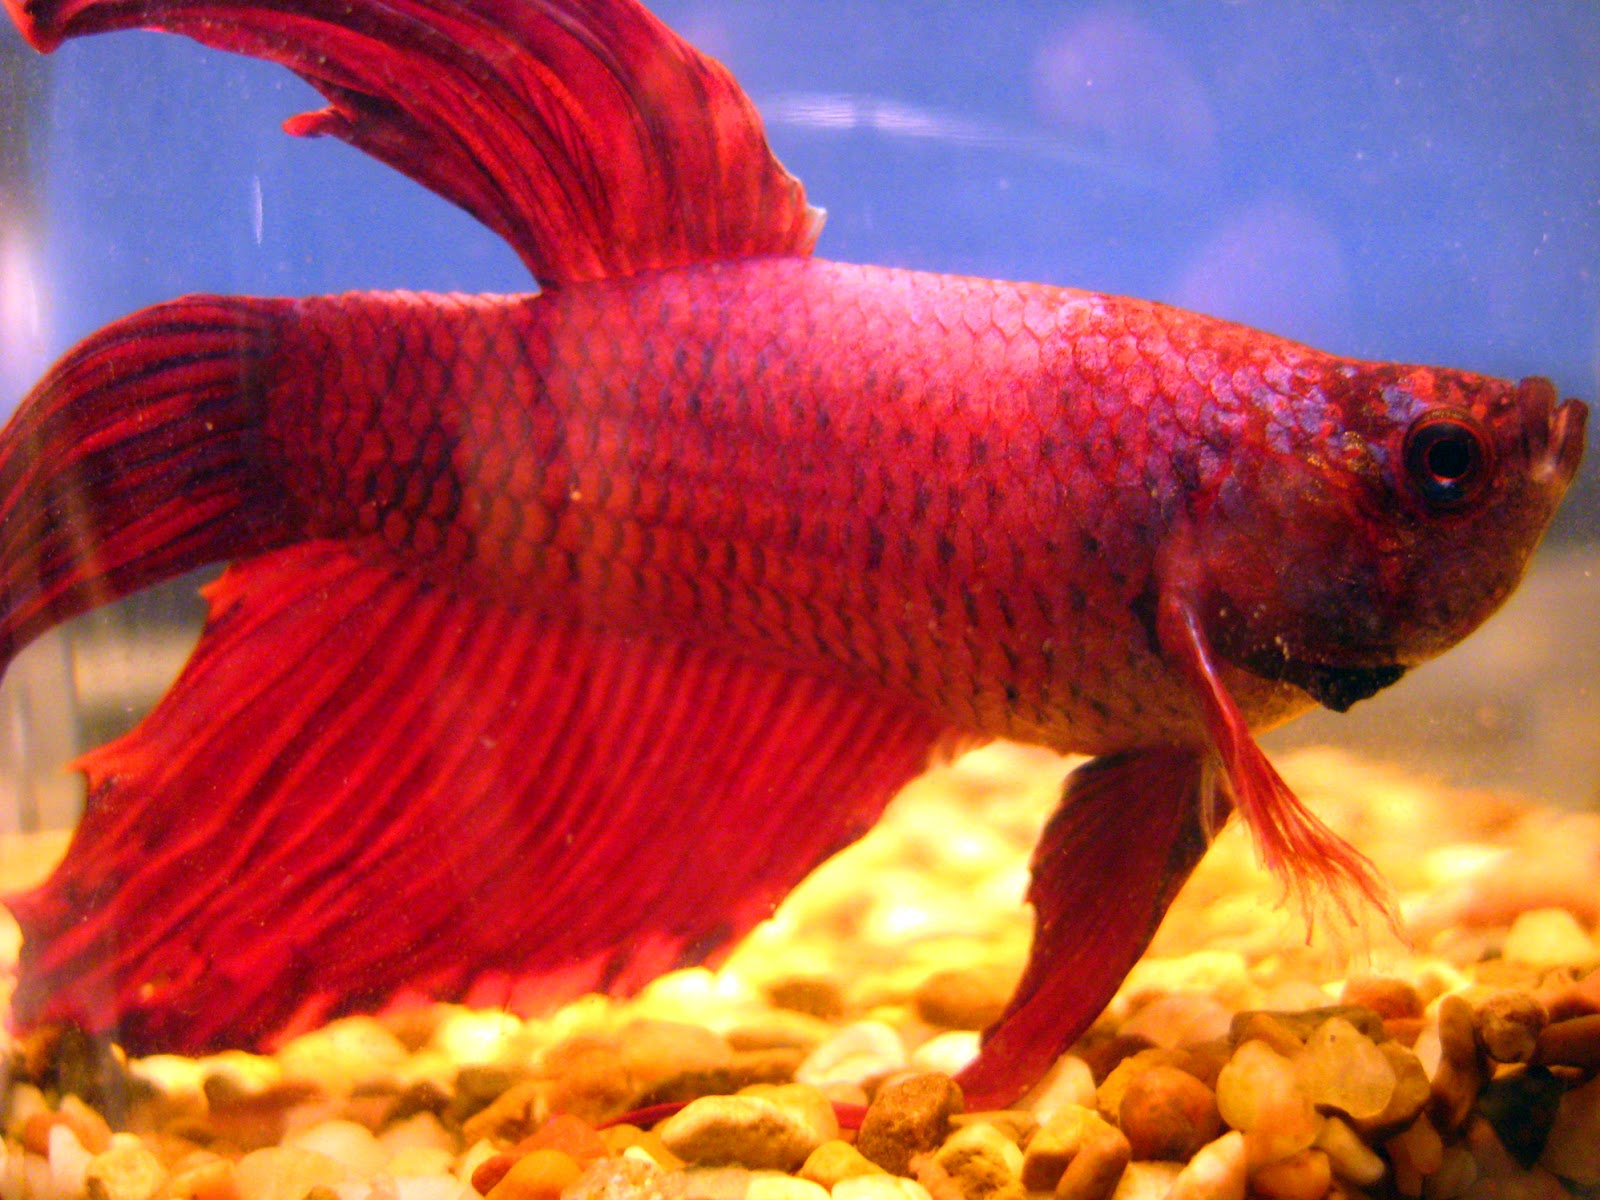 Neko random fact of the day terrible tank buddies for Can betta fish live with other fish